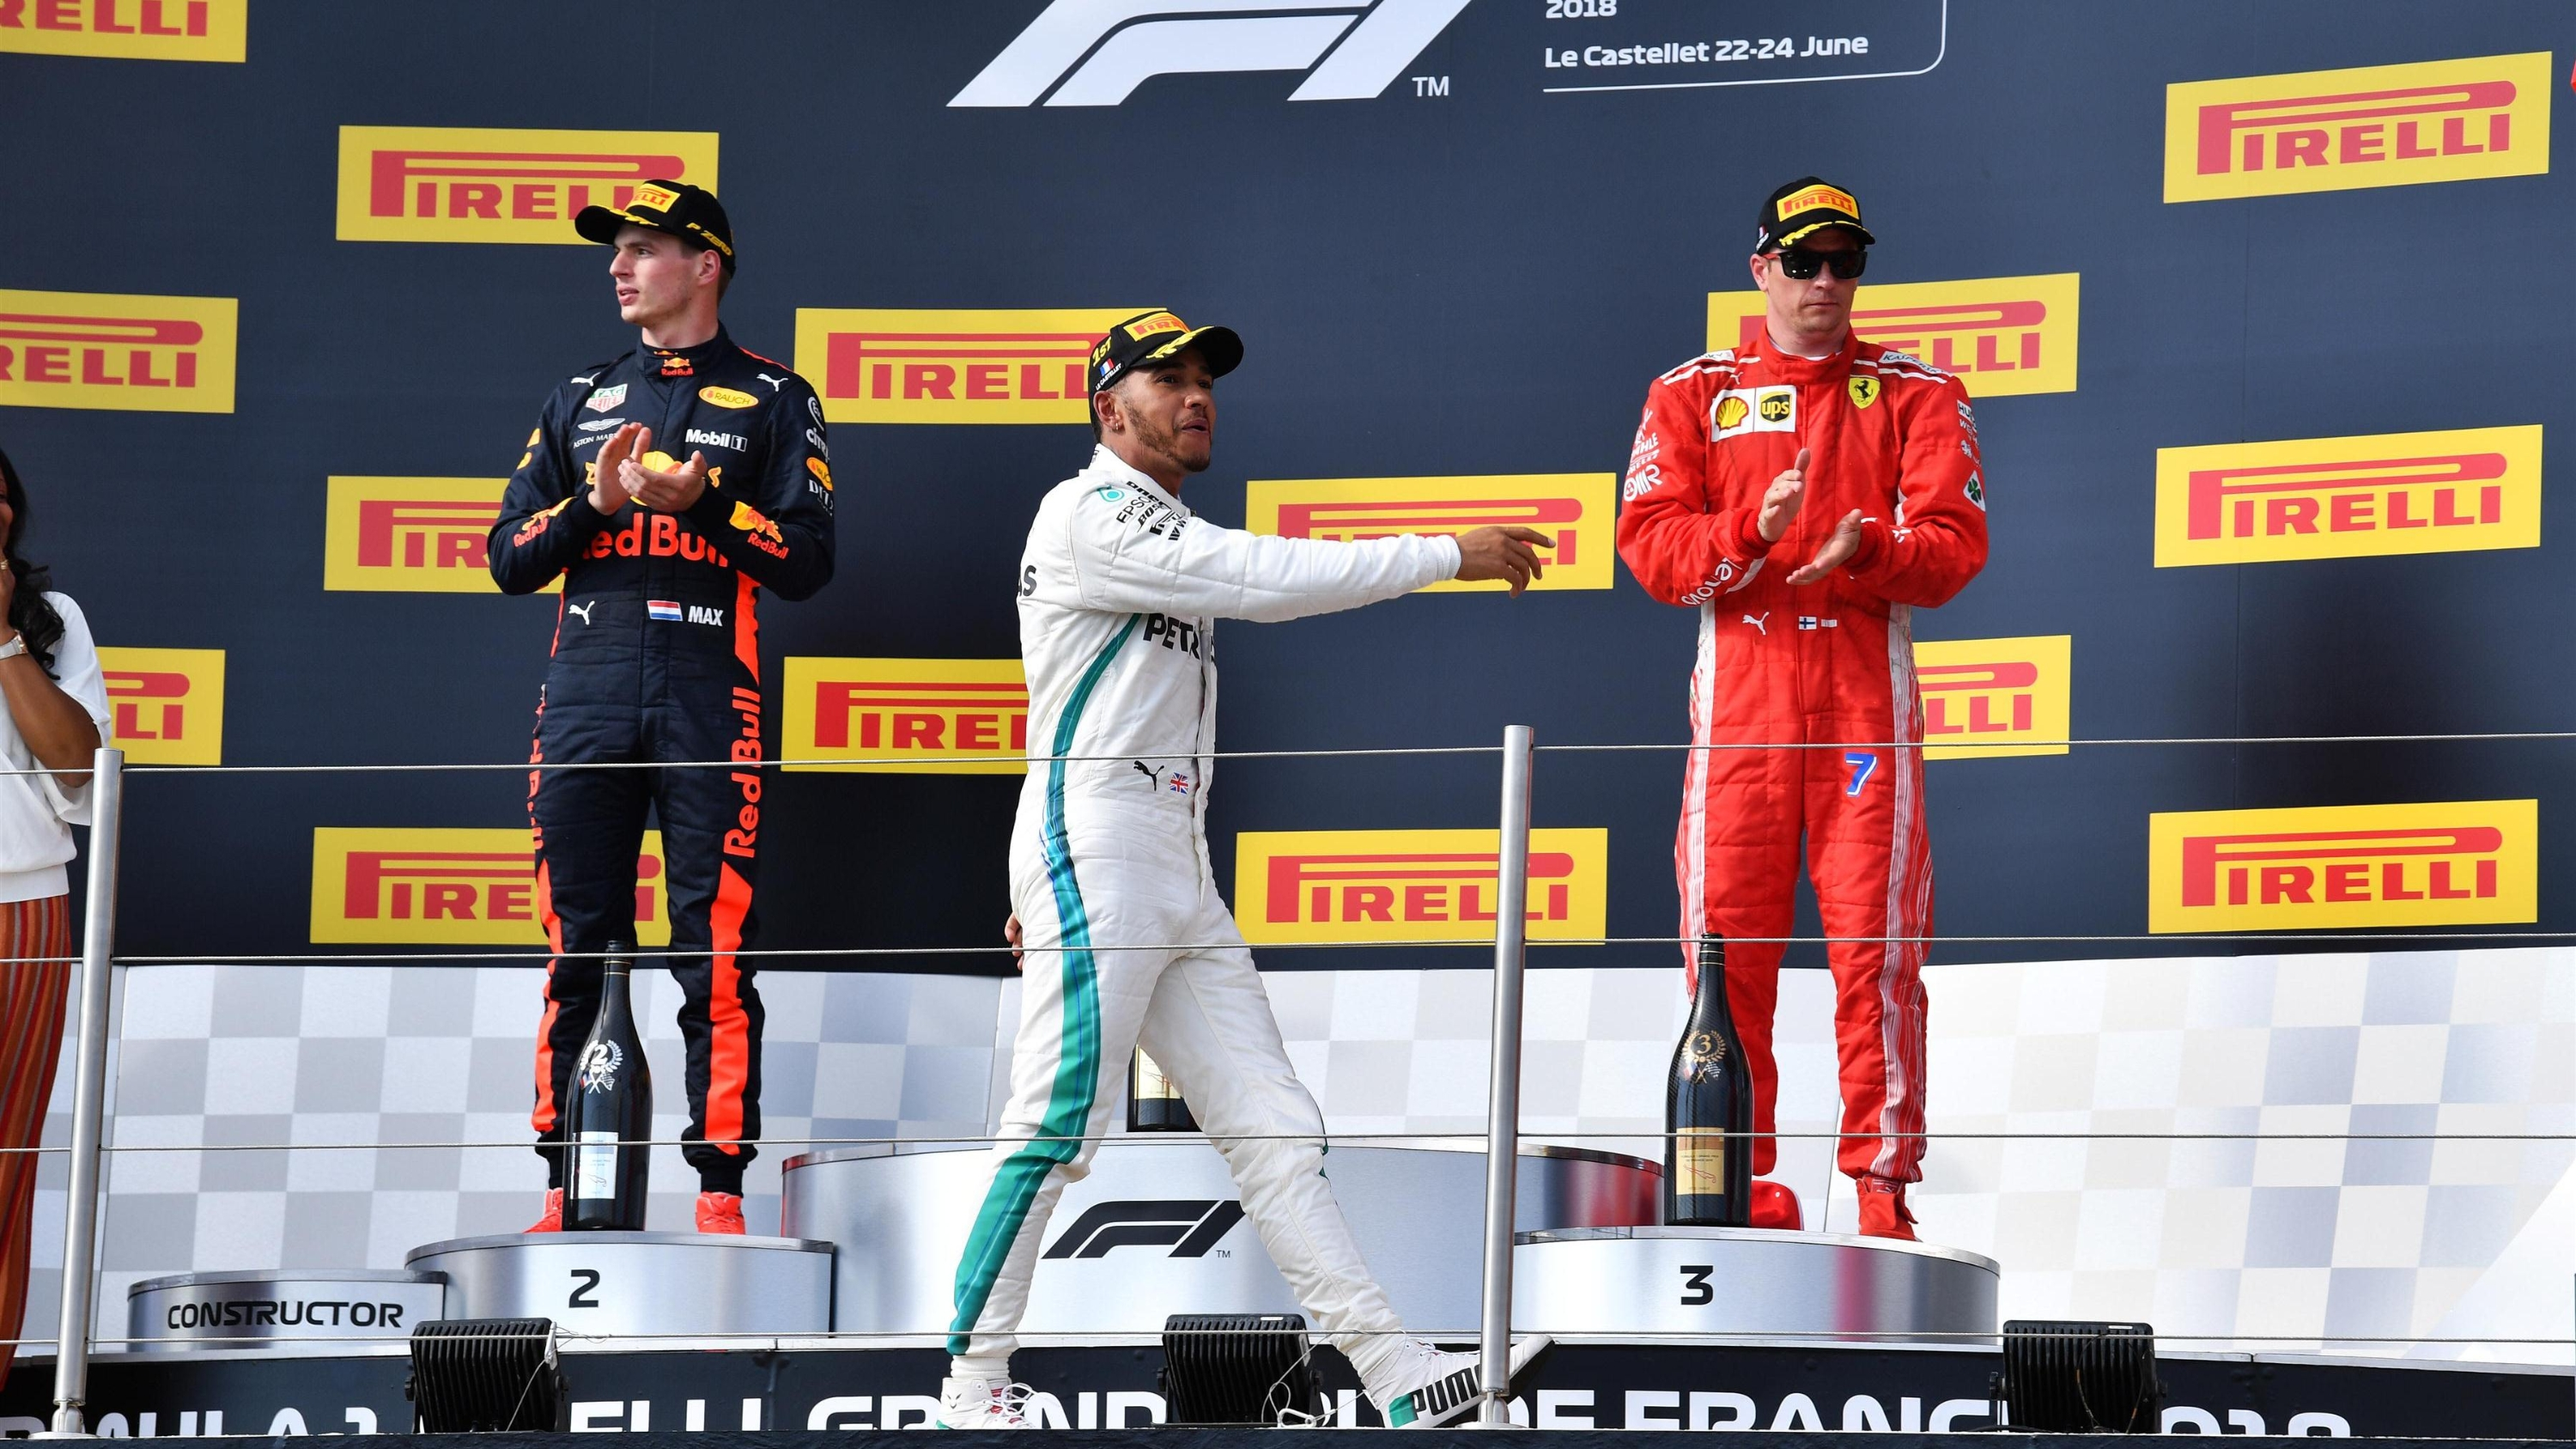 Bottas on Austria pole, Hamilton second